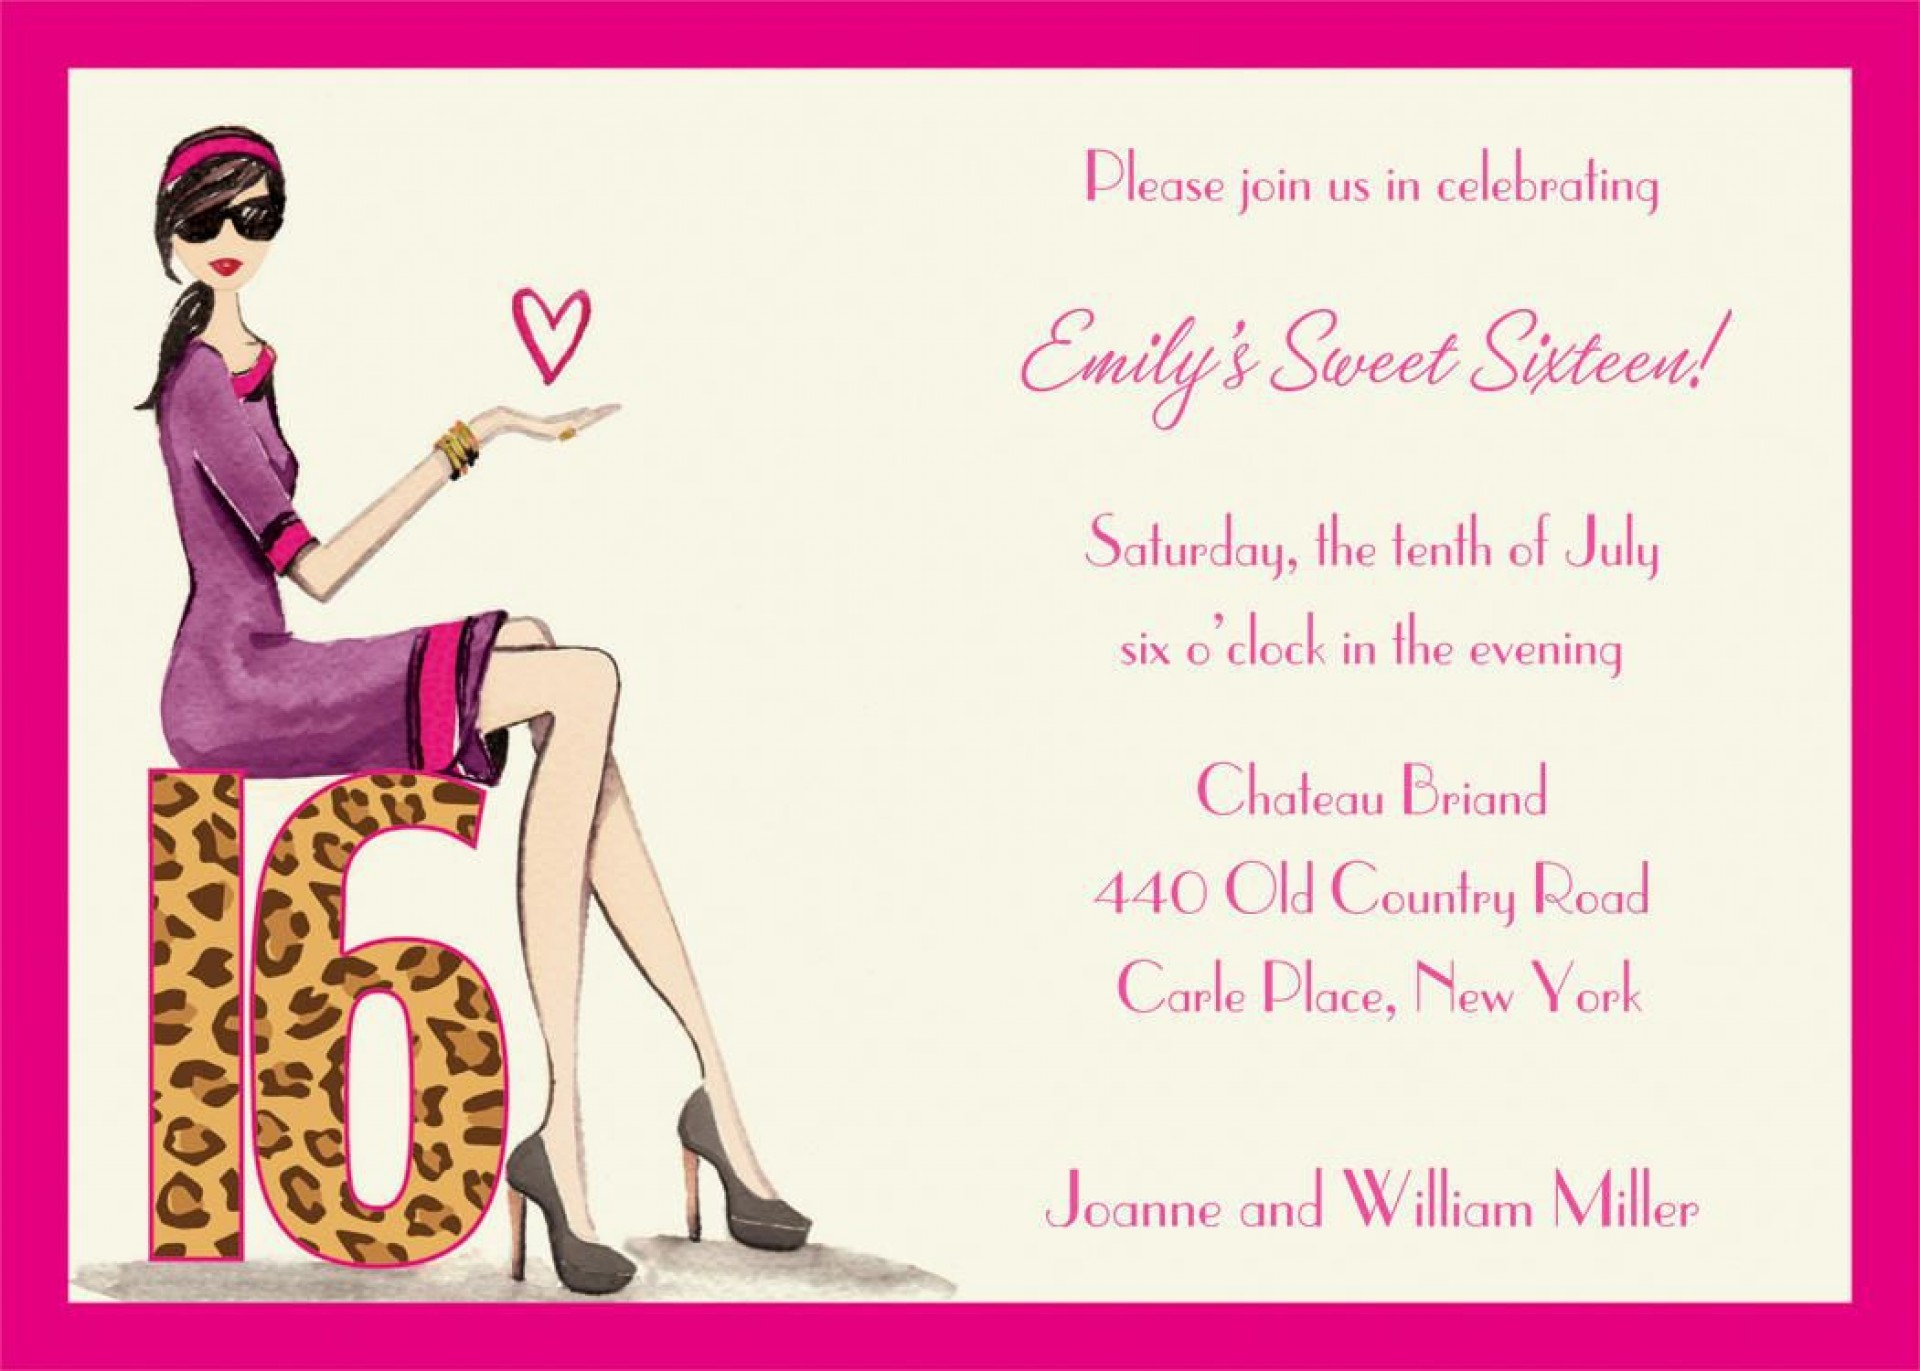 004 Incredible Sweet 16 Invite Template Highest Quality  Templates Surprise Party Invitation Birthday Free 16th1920